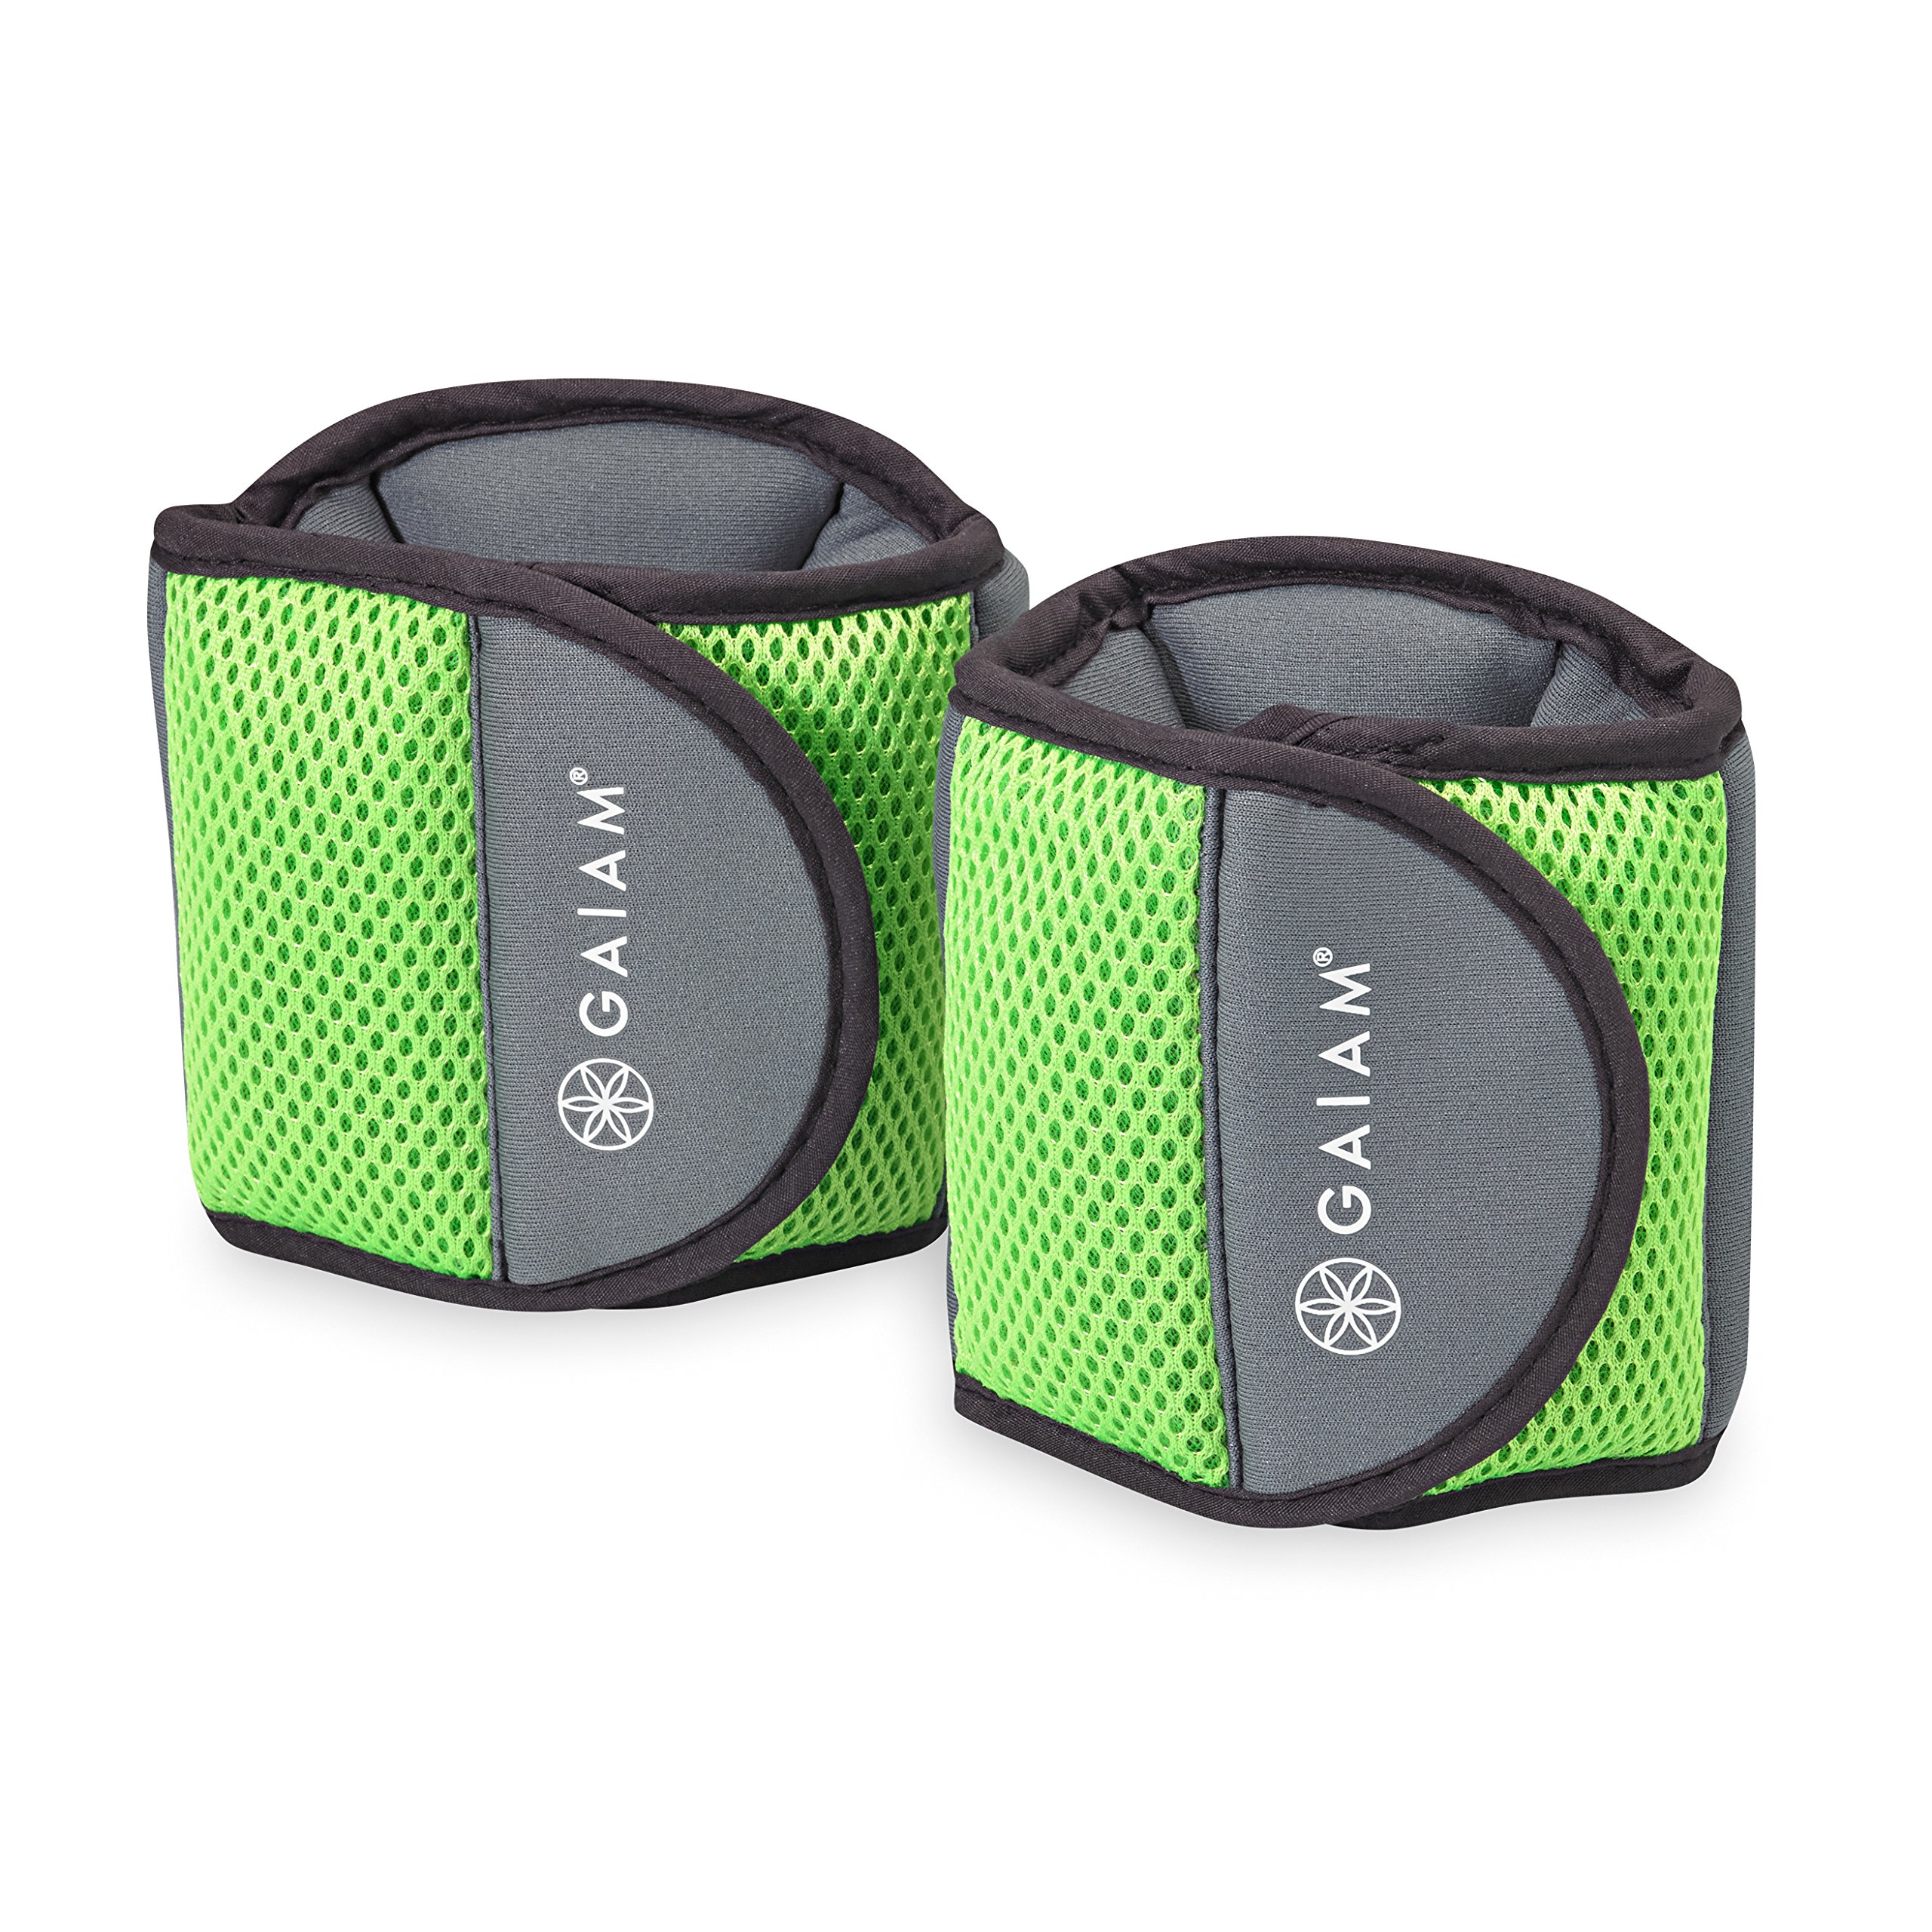 Gaiam Fitness Ankle Weights (5lb Set) by Gaiam